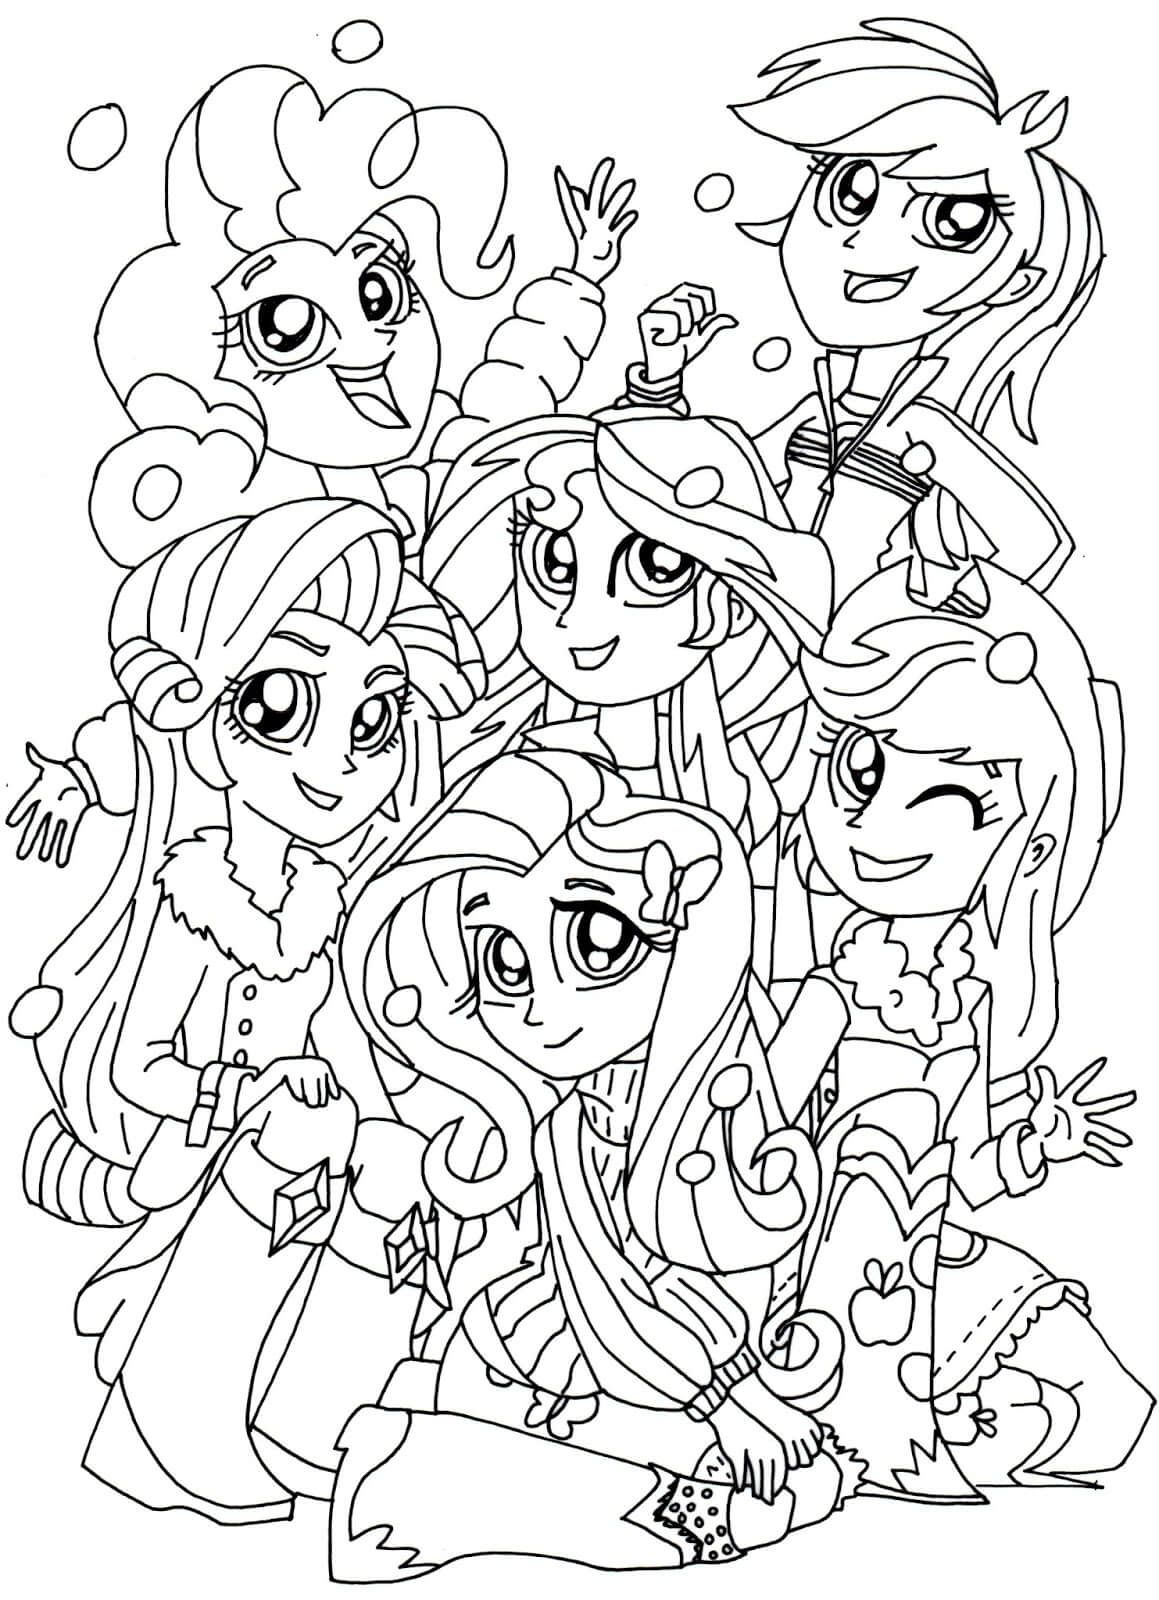 Ausmalbilder My Little Pony Baby : My Little Pony Equestria Girls Coloring Pages Equestria Girls